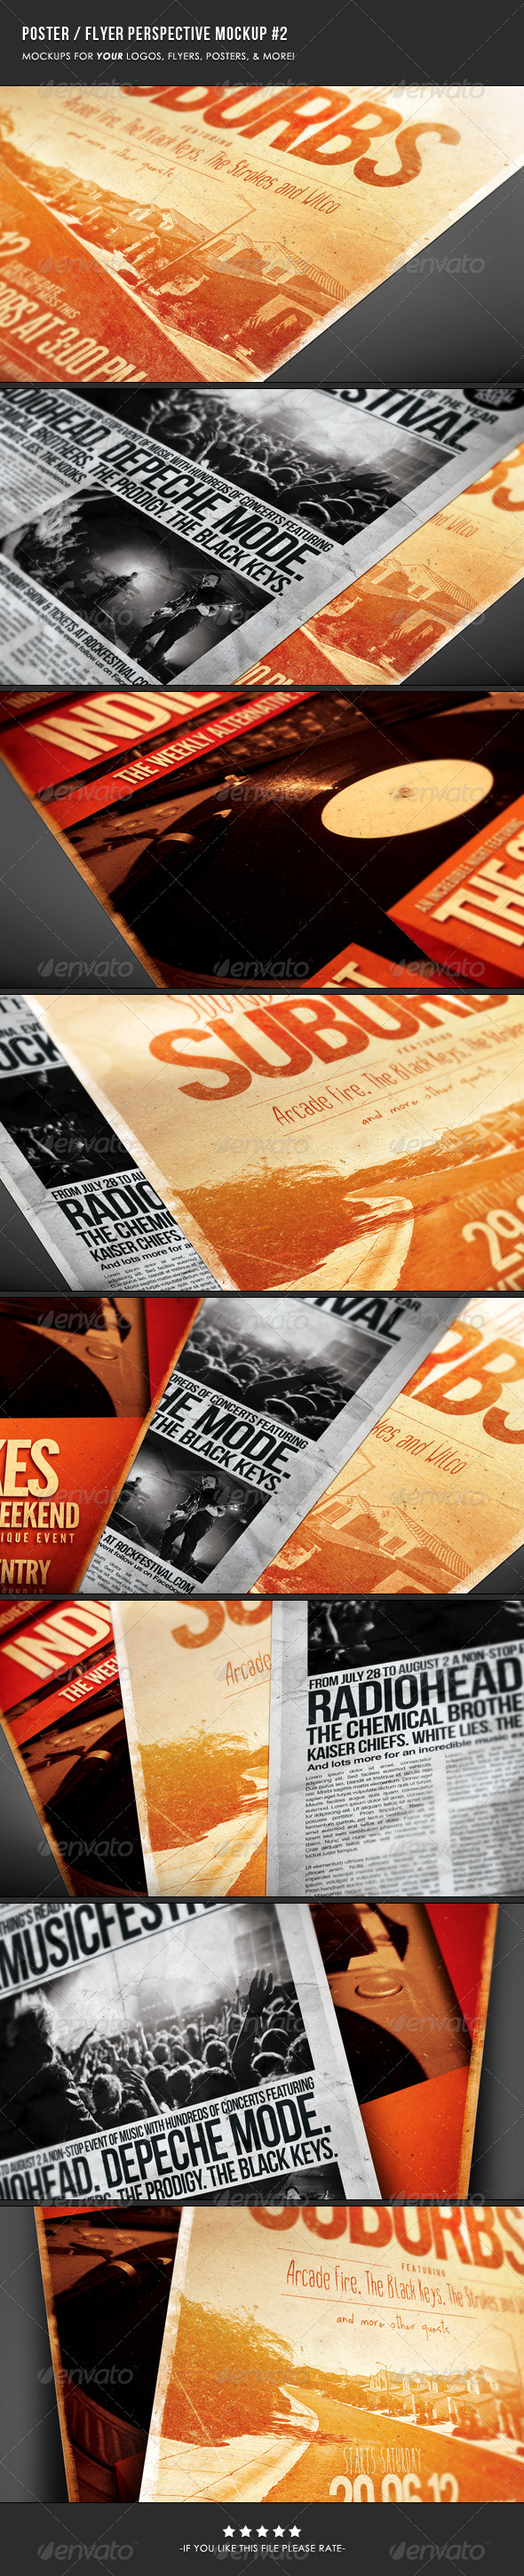 GraphicRiver Poster & Flyer Perspective Mockup #2 3740139